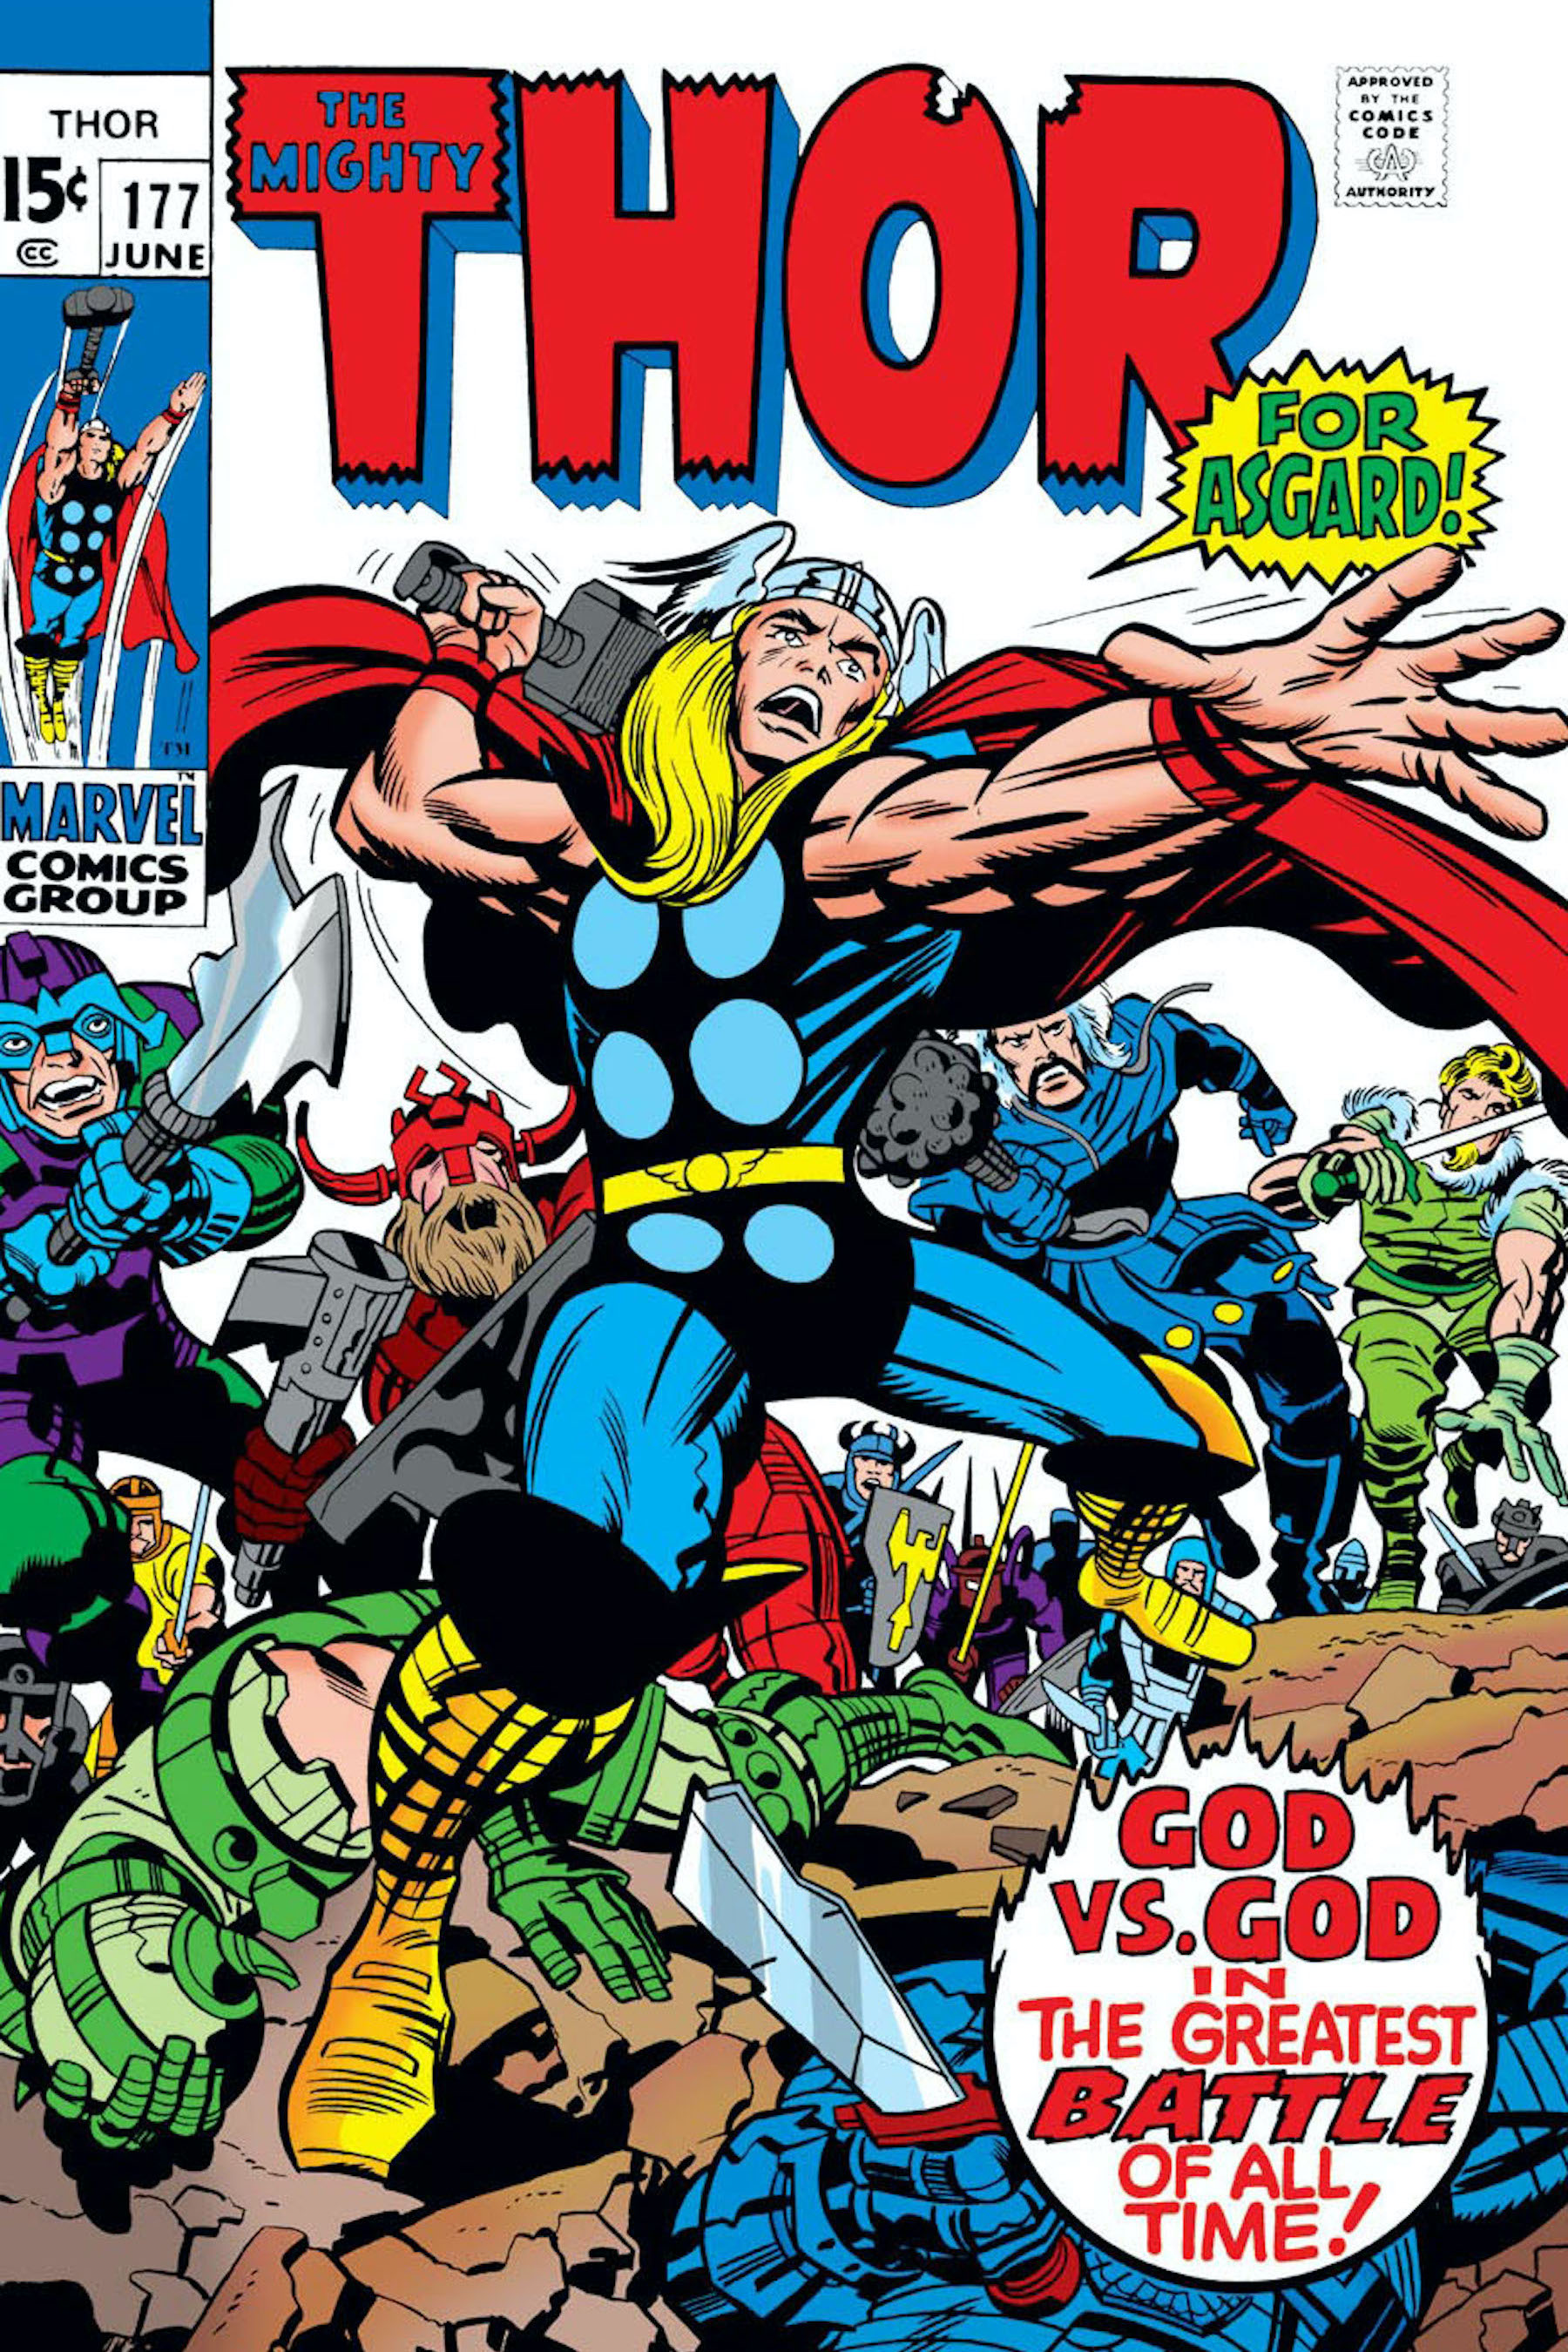 Trevor Lawrence by <strong>Wellington</strong> Alves, after THOR #177 by Jack Kirby